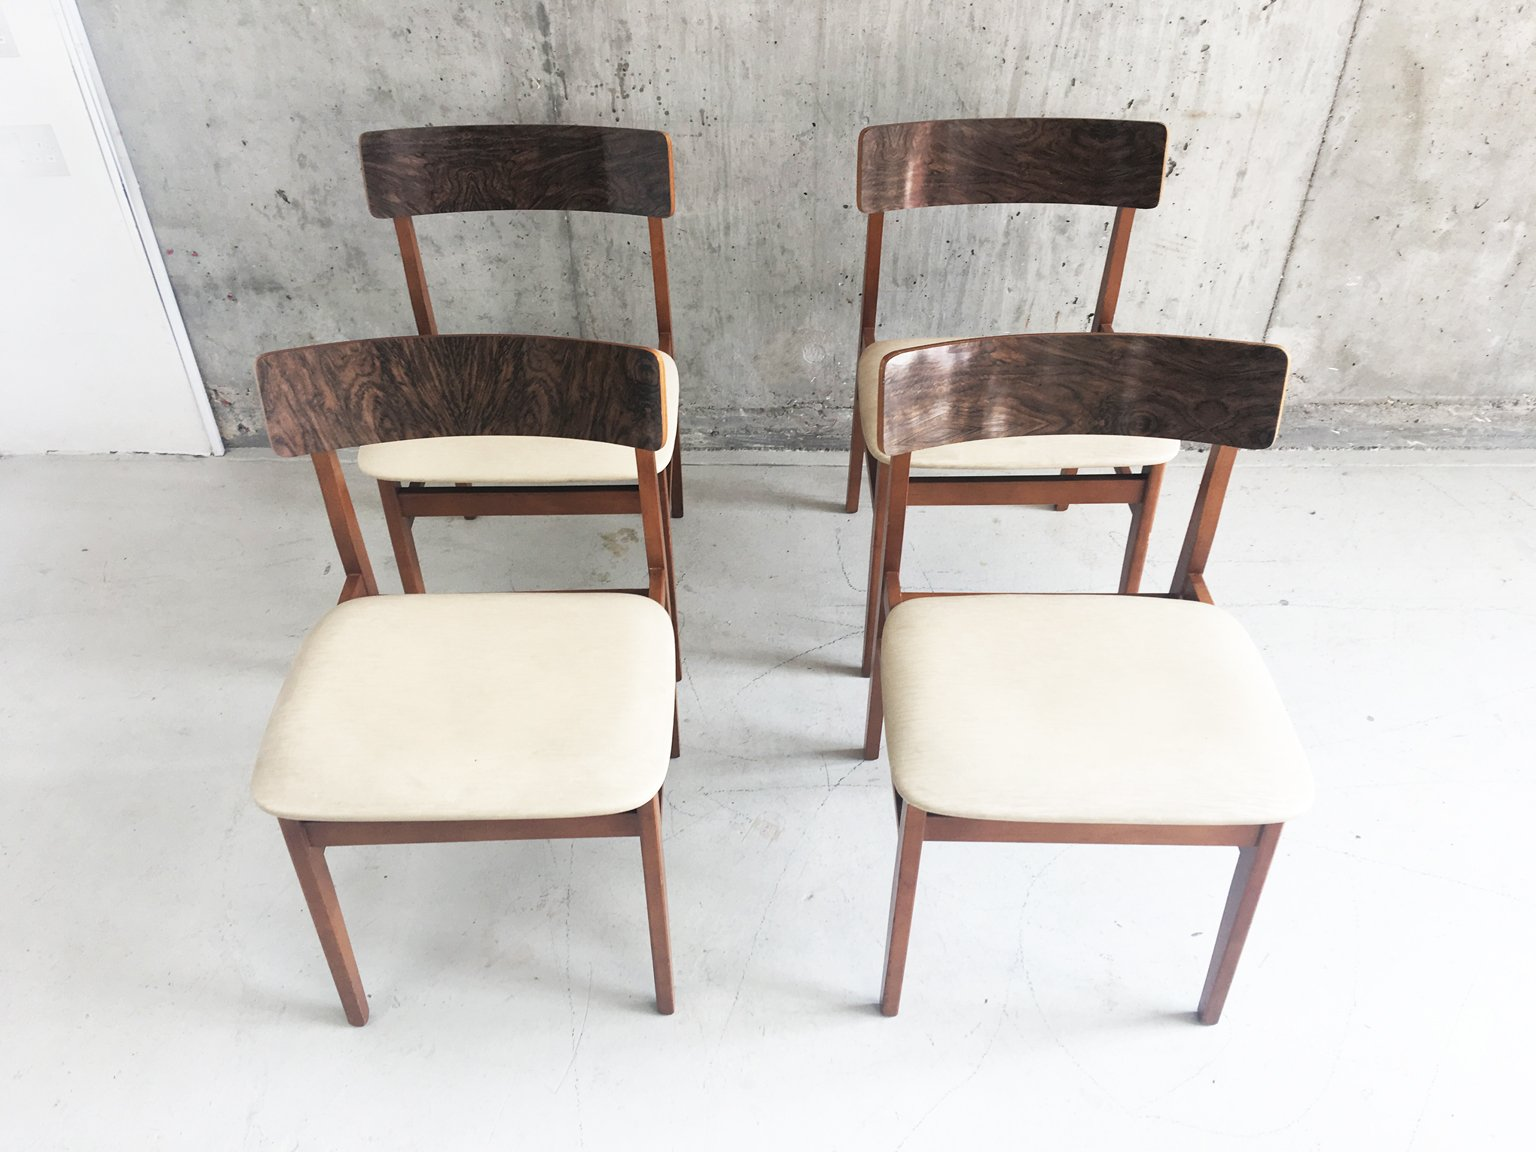 Vintage Teak Amp Vinyl Dining Chairs Set Of 4 For Sale At